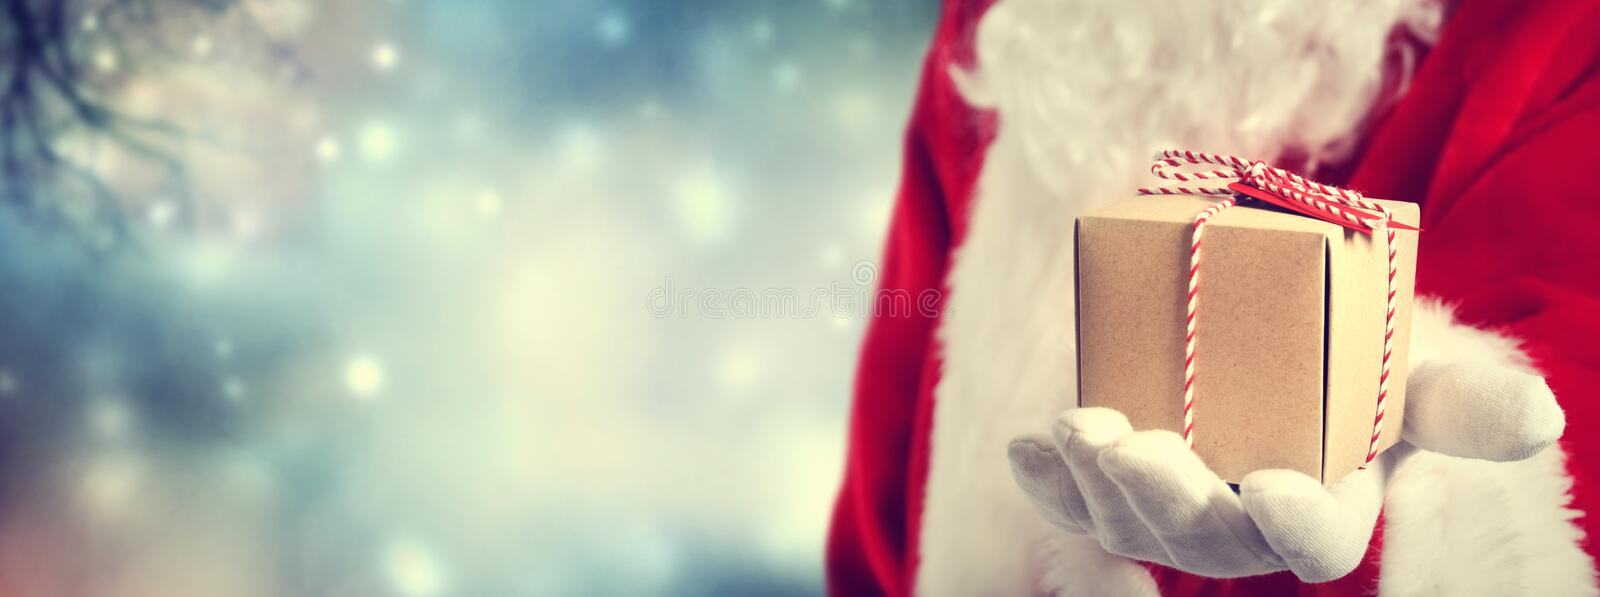 Santa Claus holding gift stock image